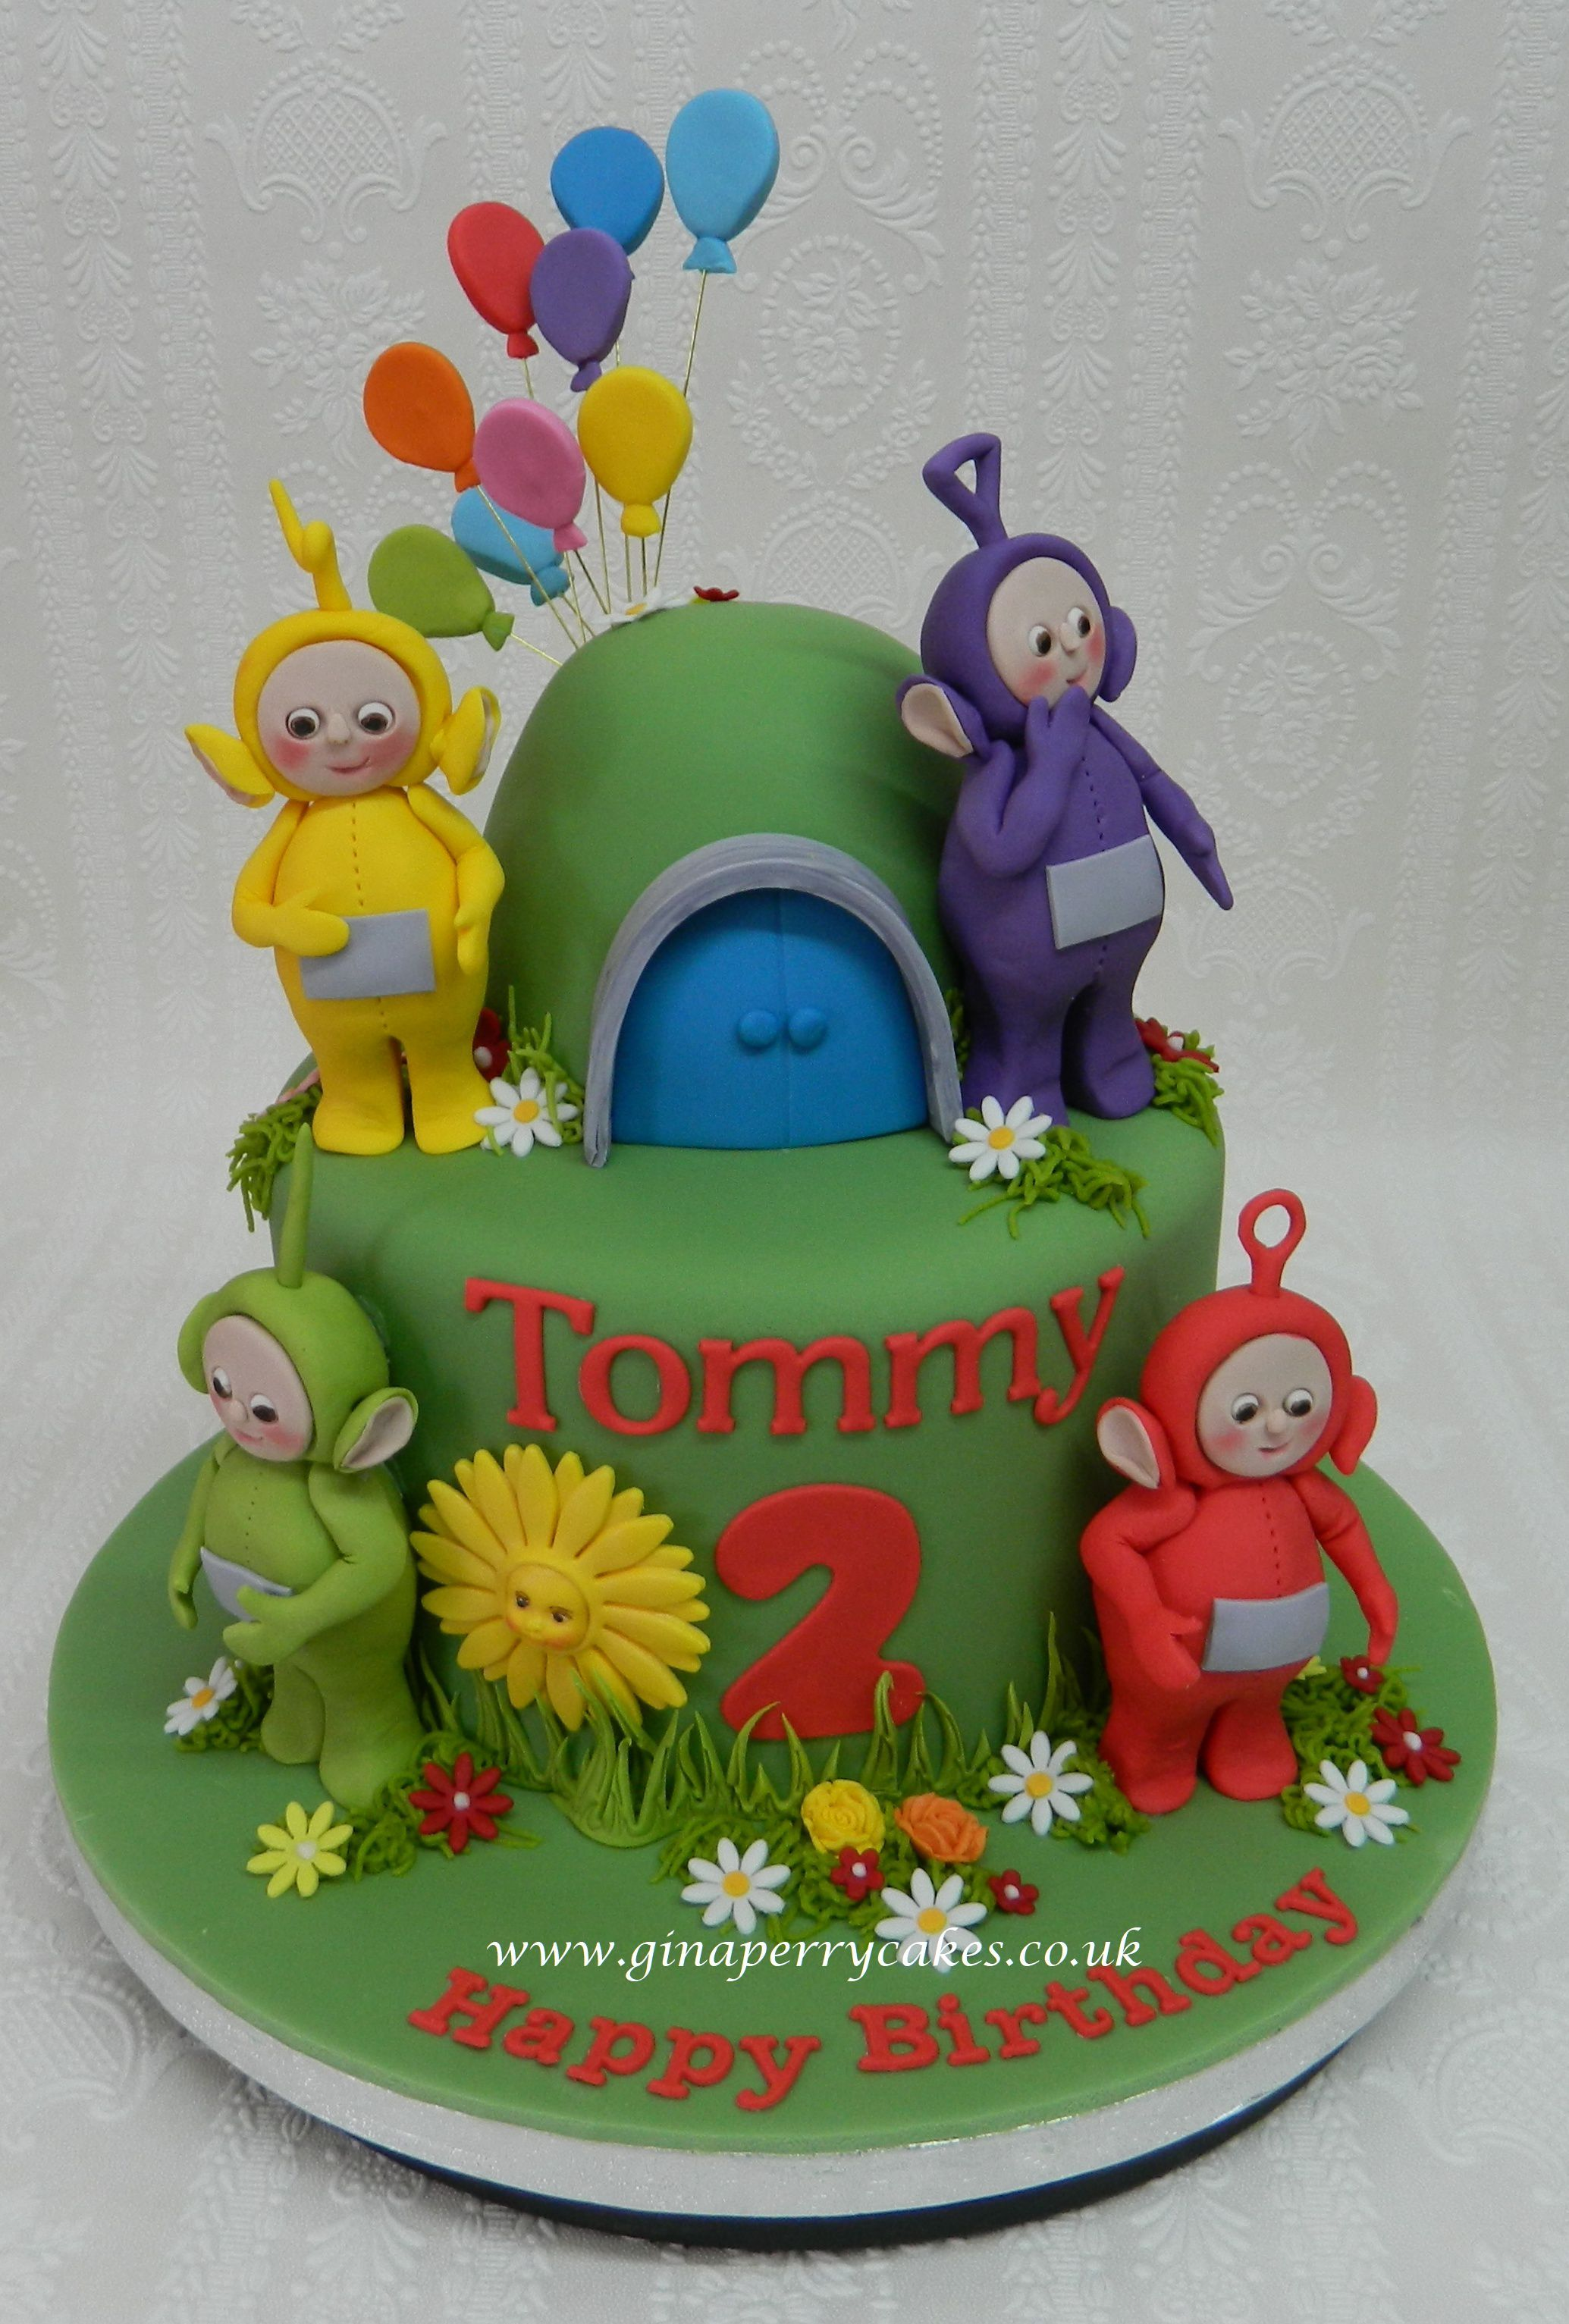 Swell 2Nd Birthday Cake Telly Tubbies With Images 1St Birthday Birthday Cards Printable Nowaargucafe Filternl